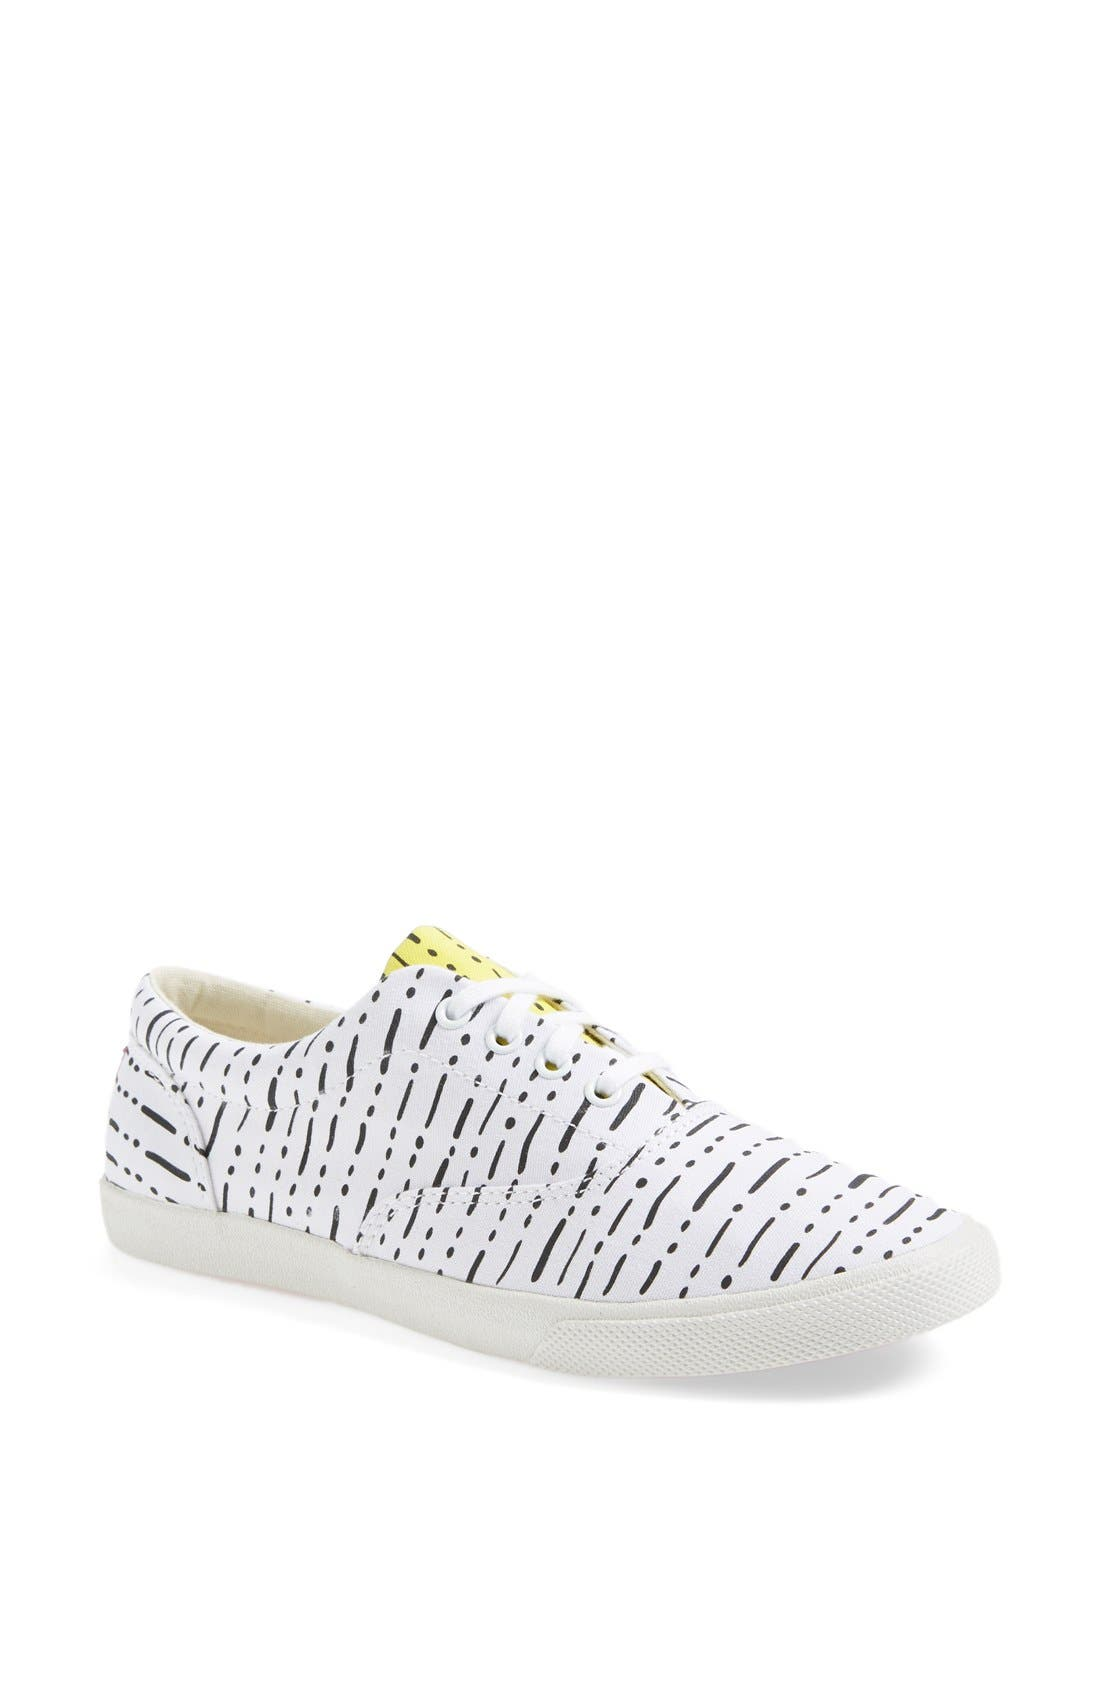 Alternate Image 1 Selected - BucketFeet 'The Dro' Sneaker (Women)